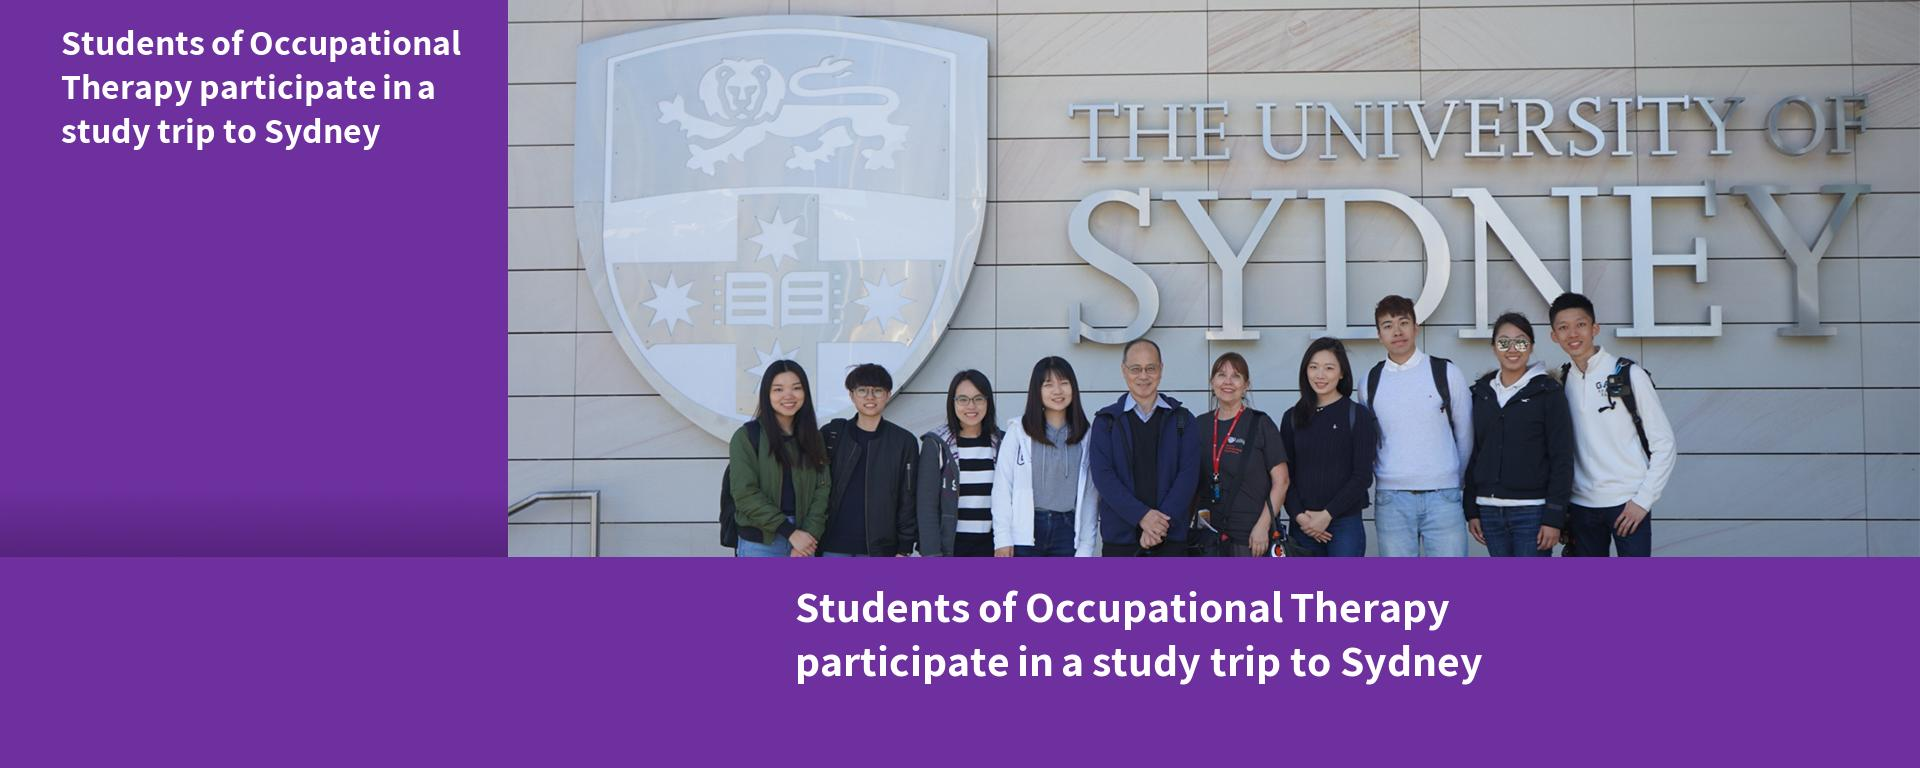 Students of Occupational Therapy participate in a study trip to Sydney